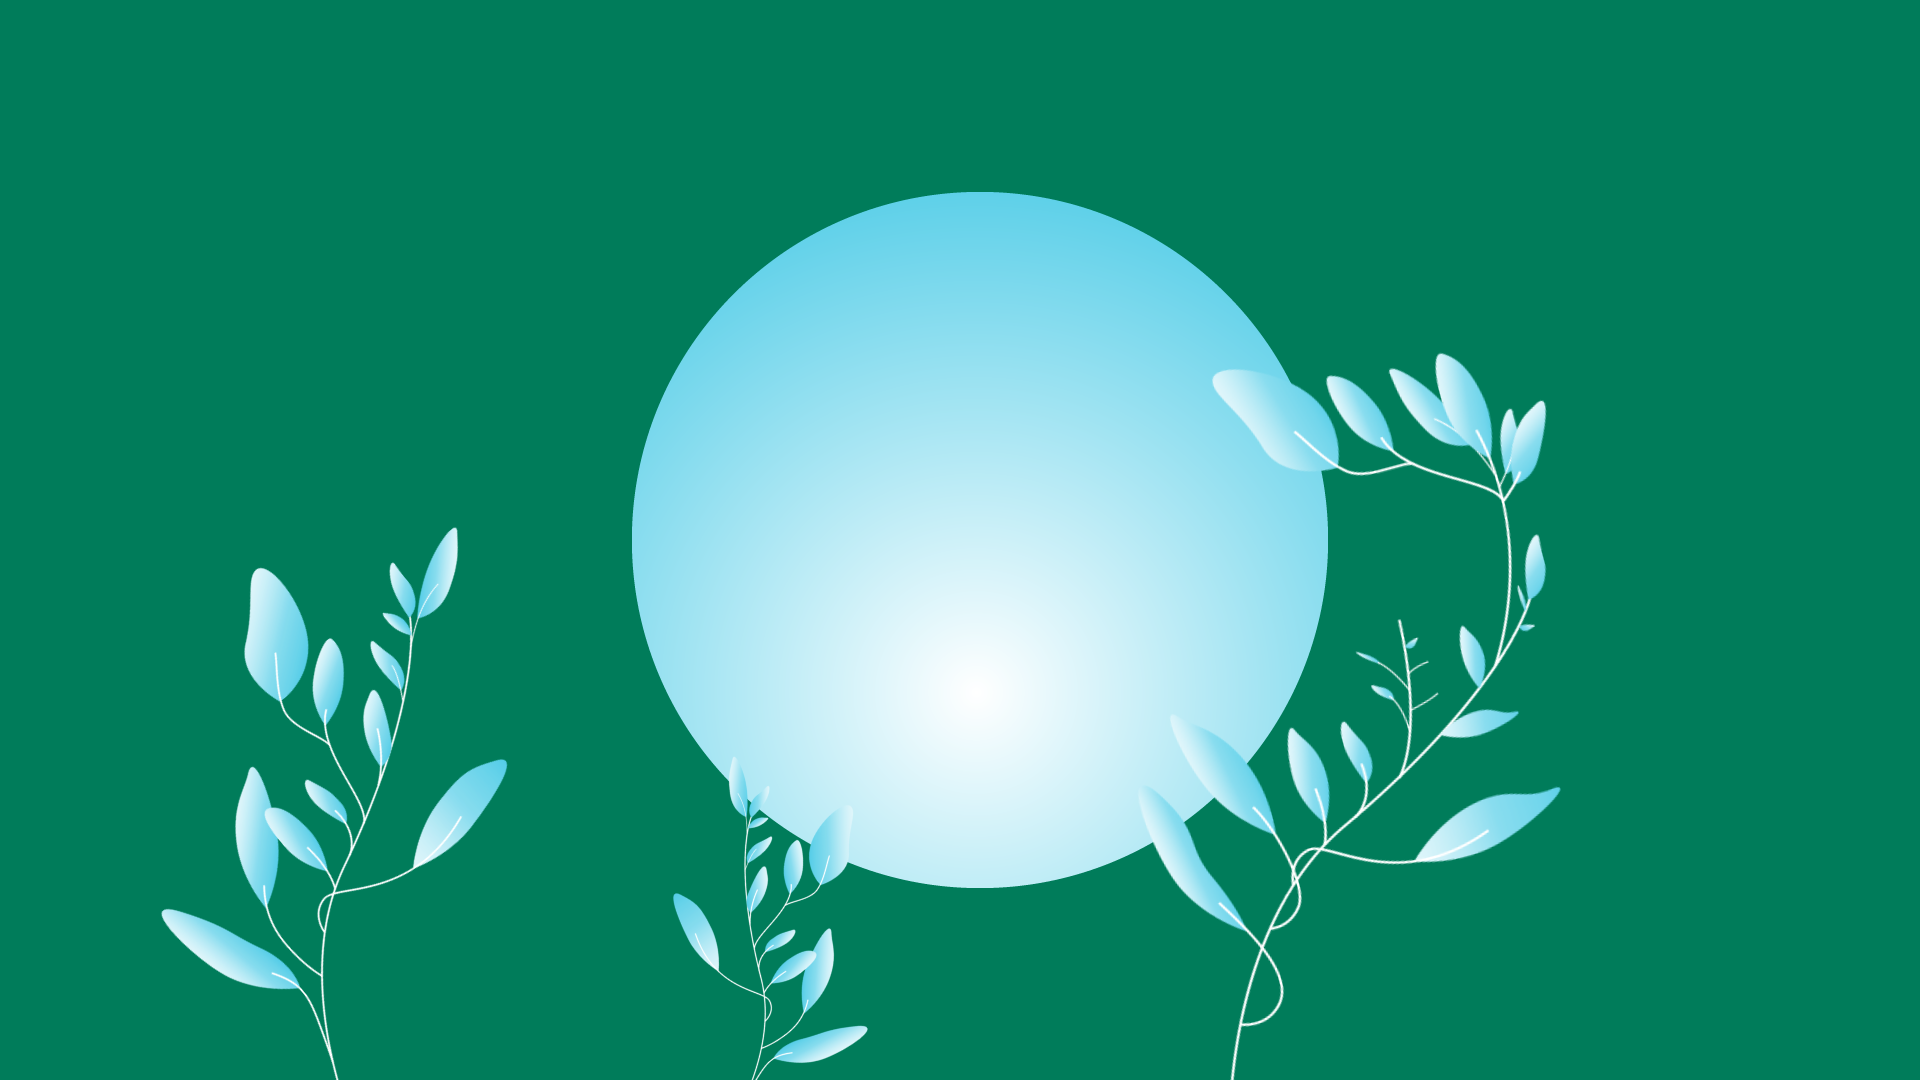 Sequences, inner circle of growth hacking, blue circle on green background with sprouting blue leafy plants.